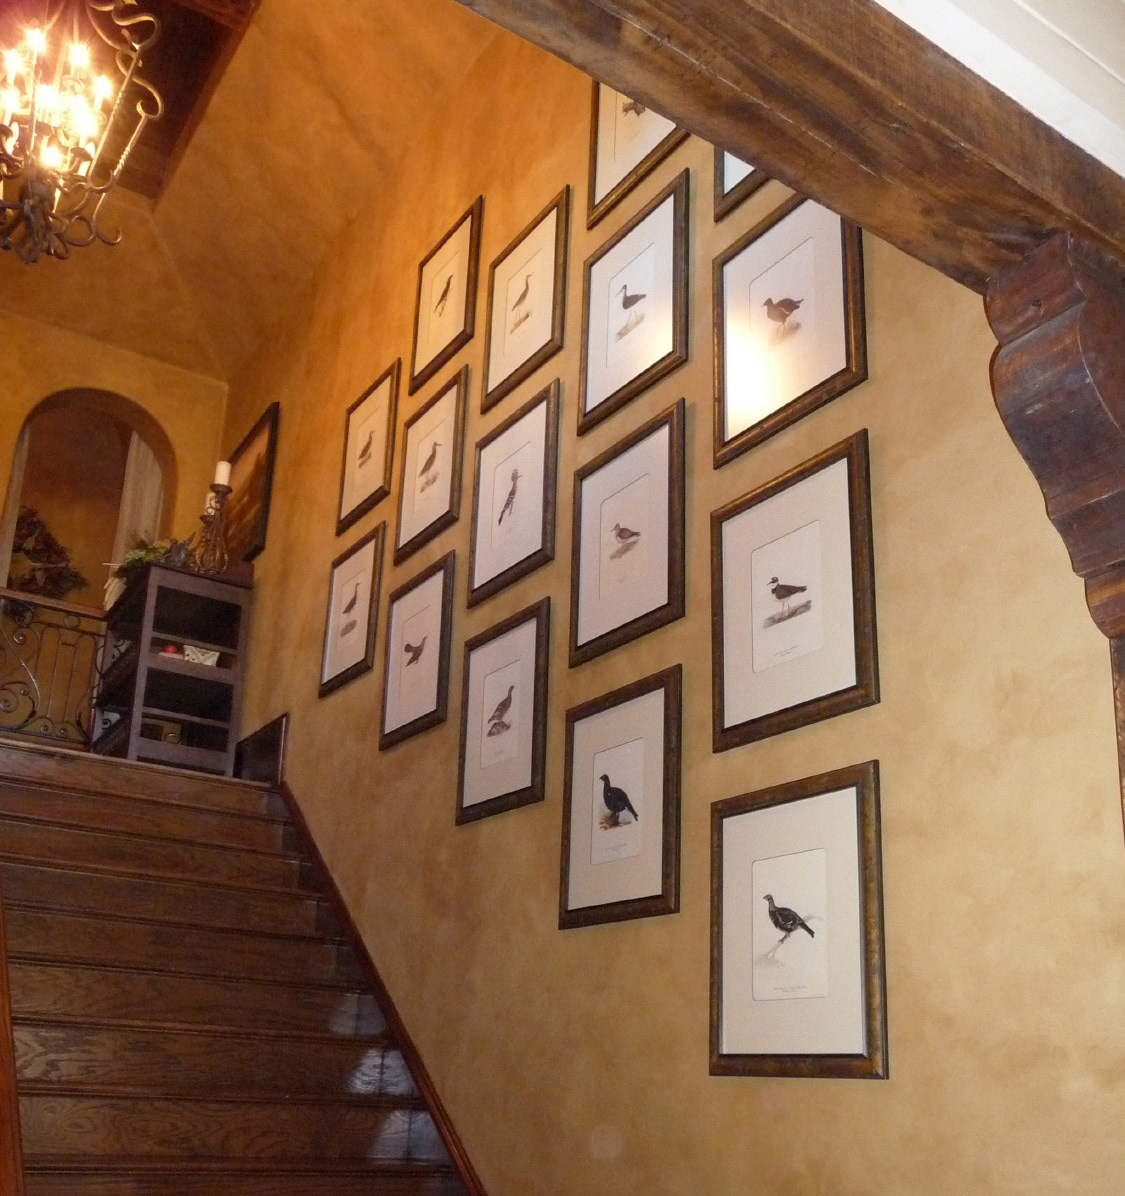 photographs arranged on a staircase wall